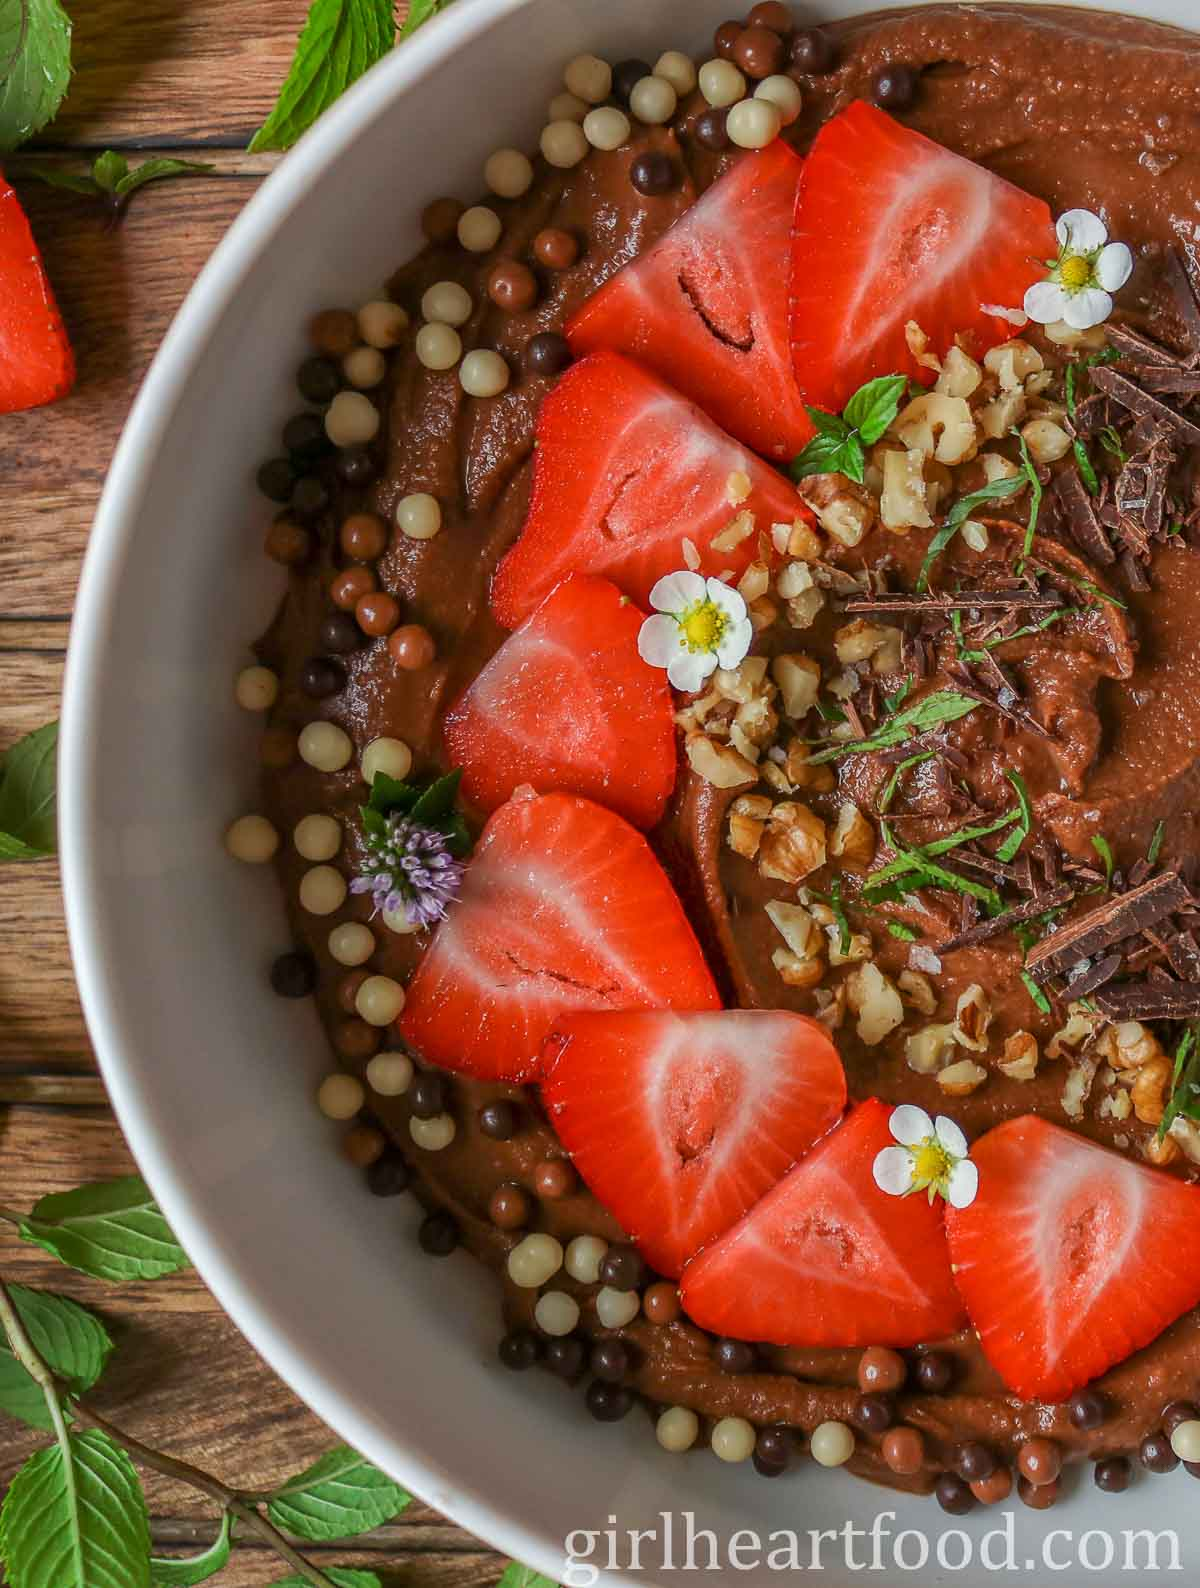 Close-up of a bowl of chocolate hummus garnished with toppings.